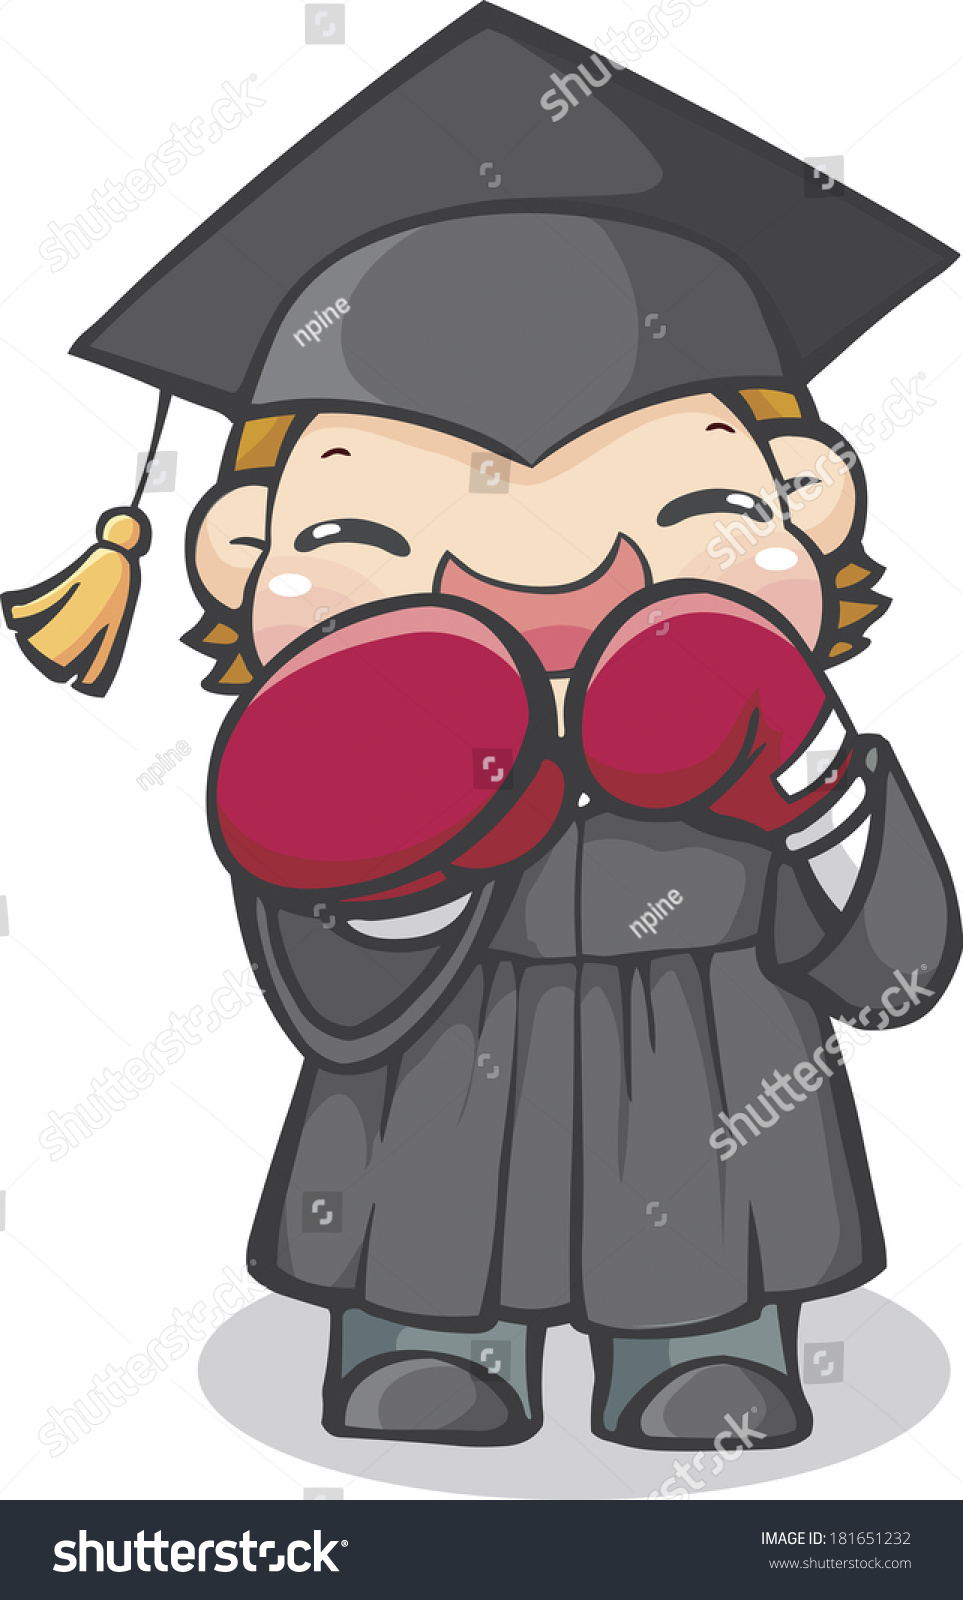 Boy Wearing Graduation Cap Gown Boxing Stock Illustration 181651232 ...